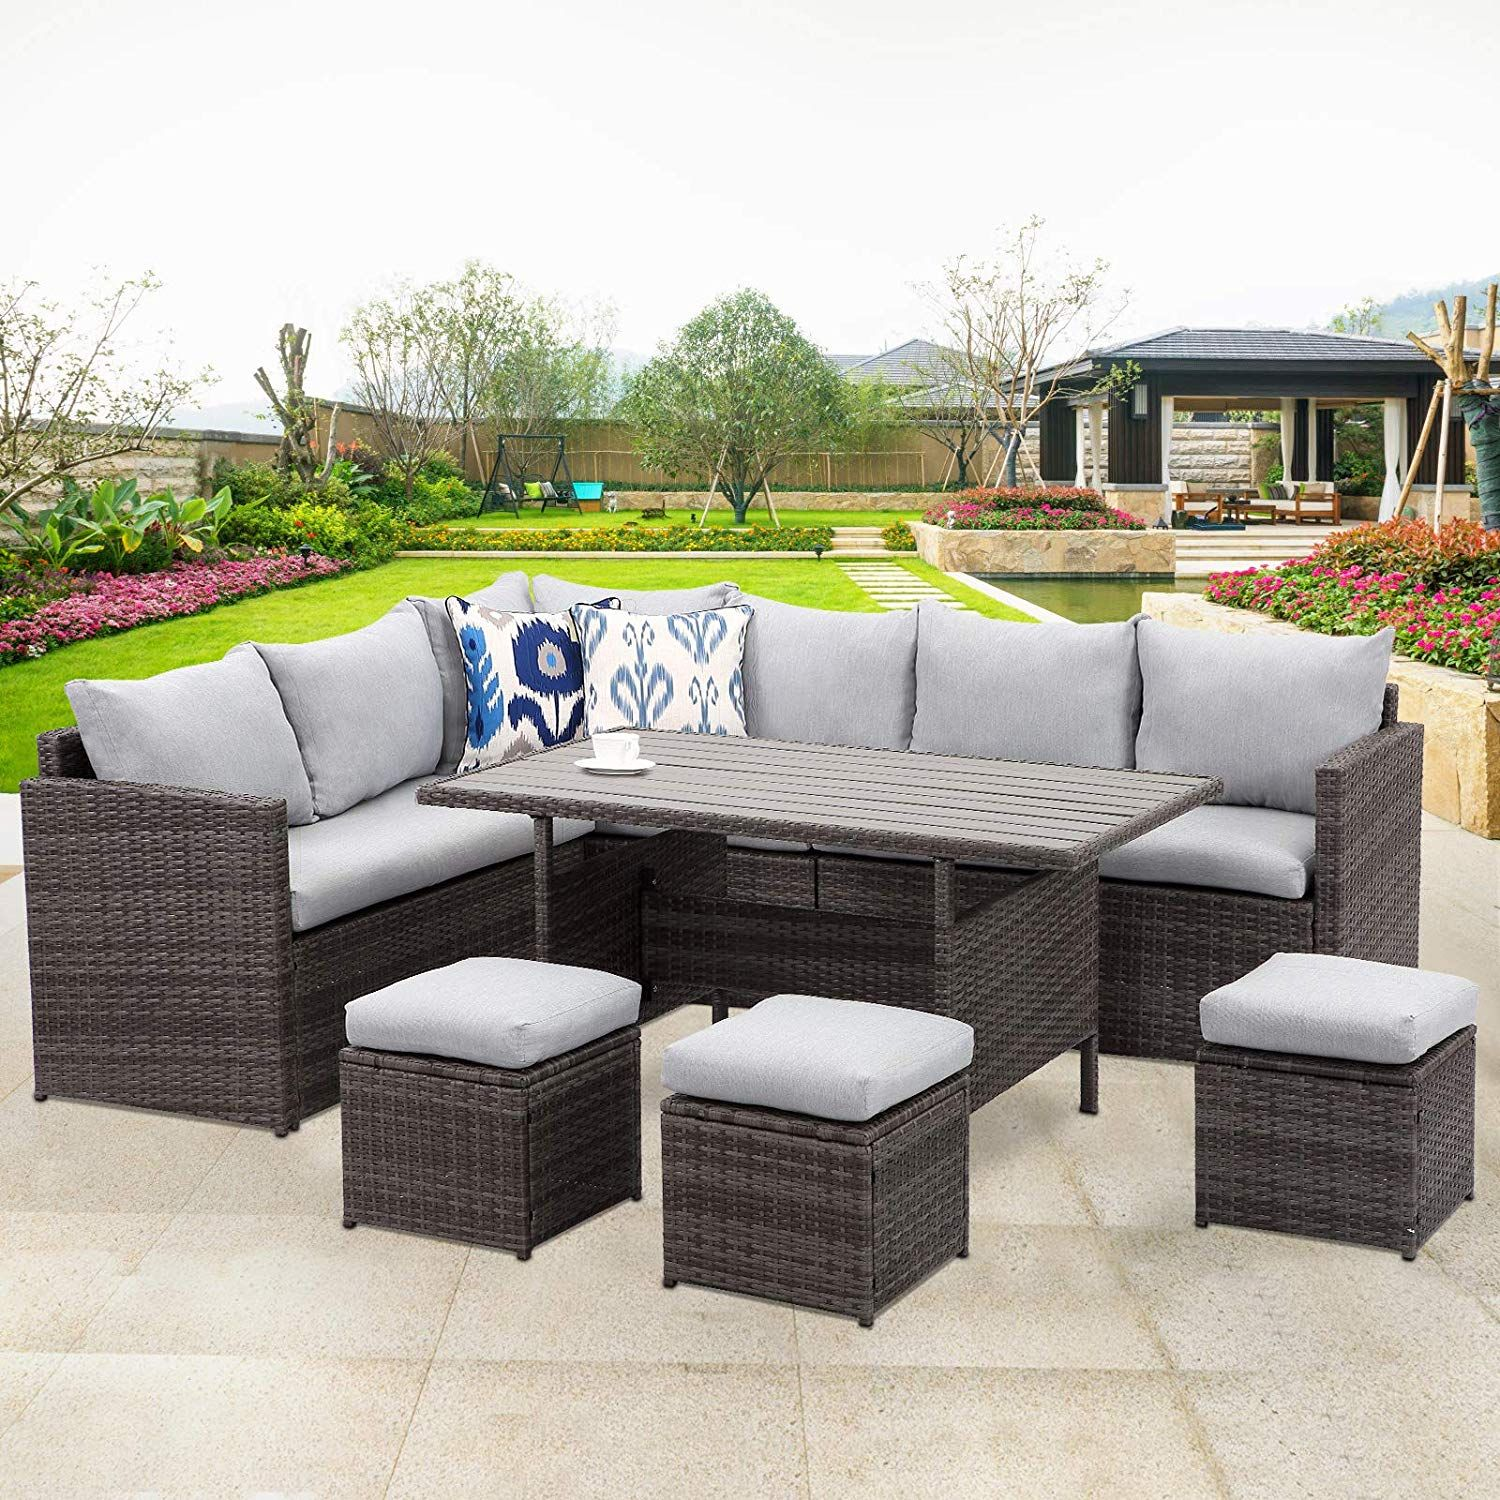 Free 2 Day Shipping Buy 7 Piece Outdoor Conversation Set All Weather Wicker Sectional Sofa Couc In 2020 Couch Dining Table Patio Furniture Sets Outdoor Furniture Sets